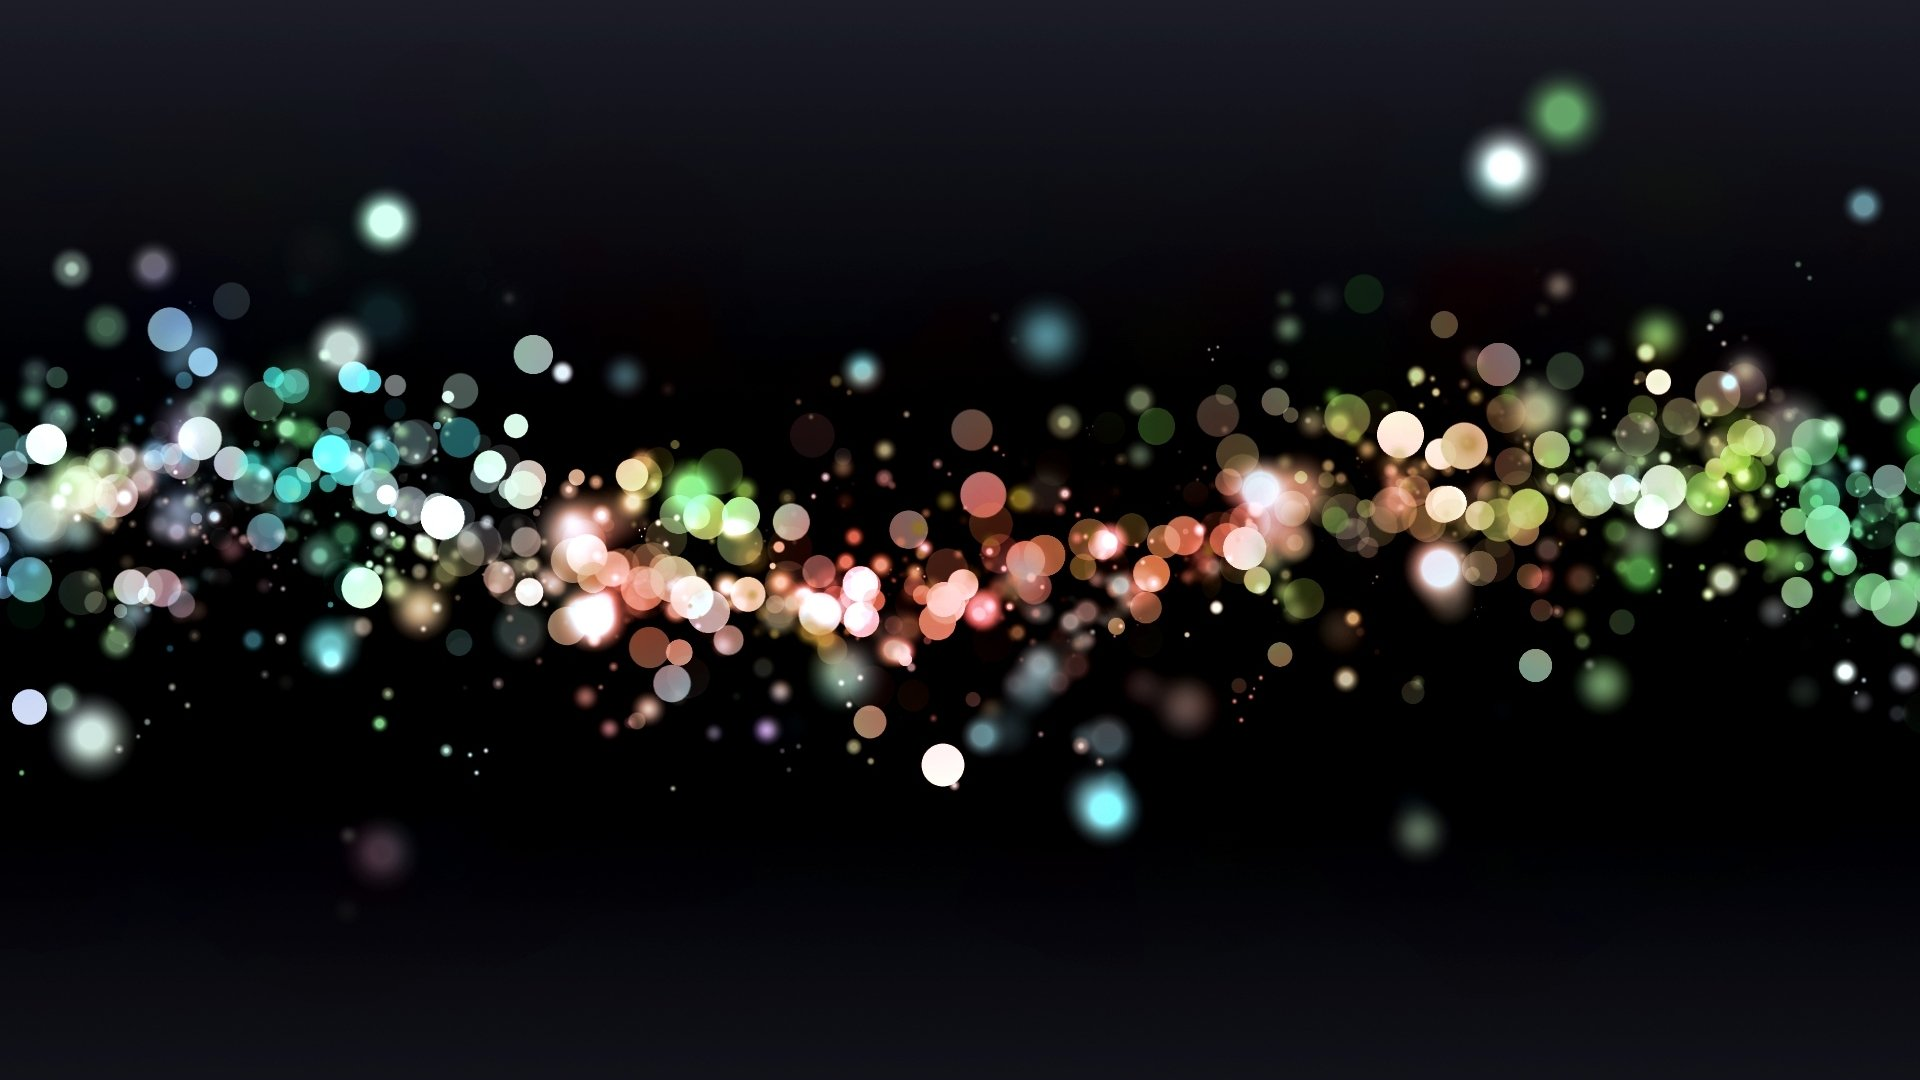 Name 892311 Mon 3 Aug CEST 2015 Sparkle Abstract Image Galleries 1920x1080